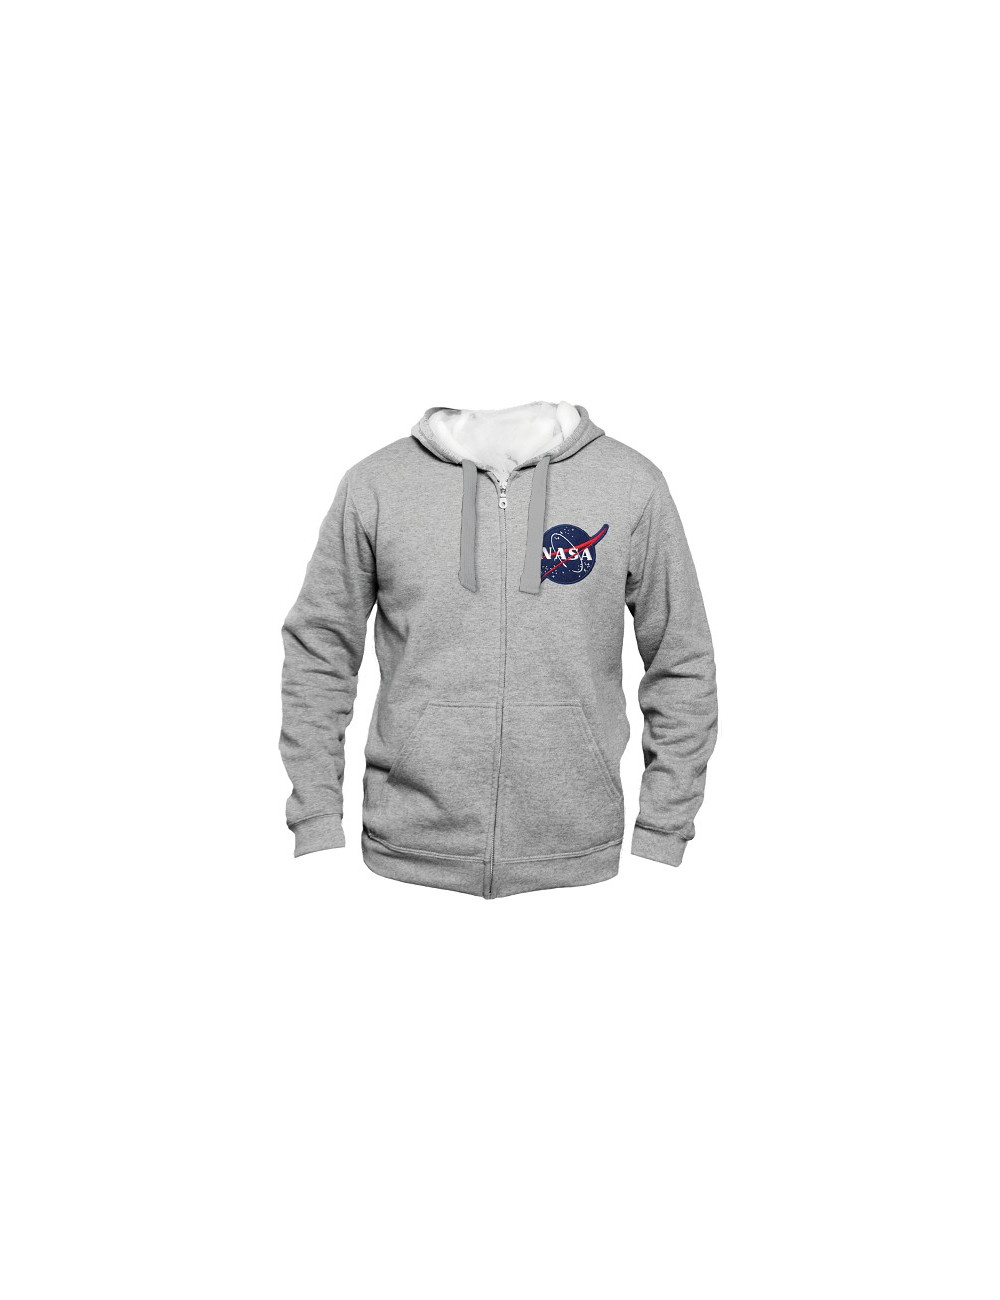 Sweat zippé capuche - NASA - GRIS - LOGO - XL